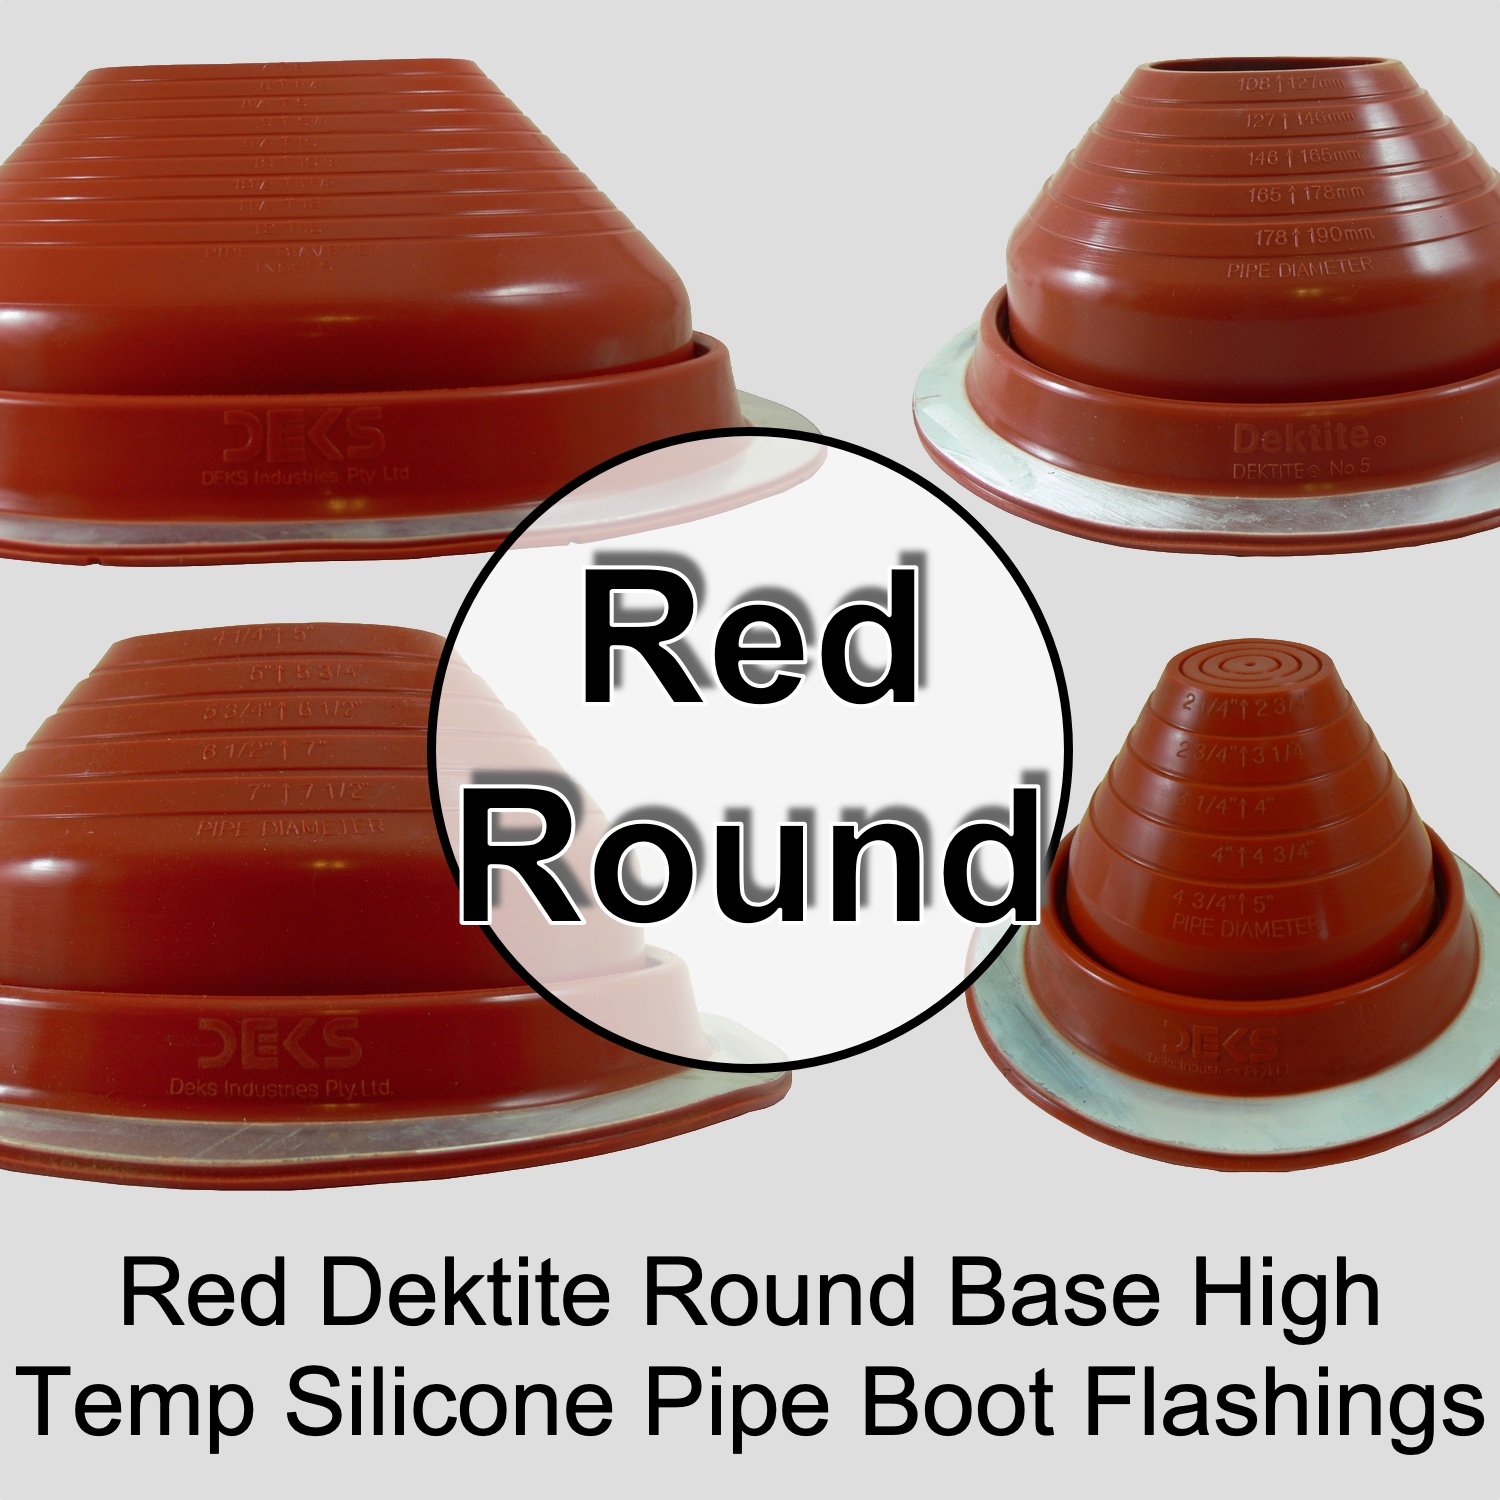 Metal Roof Round High Temperature Silicone Chimney Stove Pipe Flashing